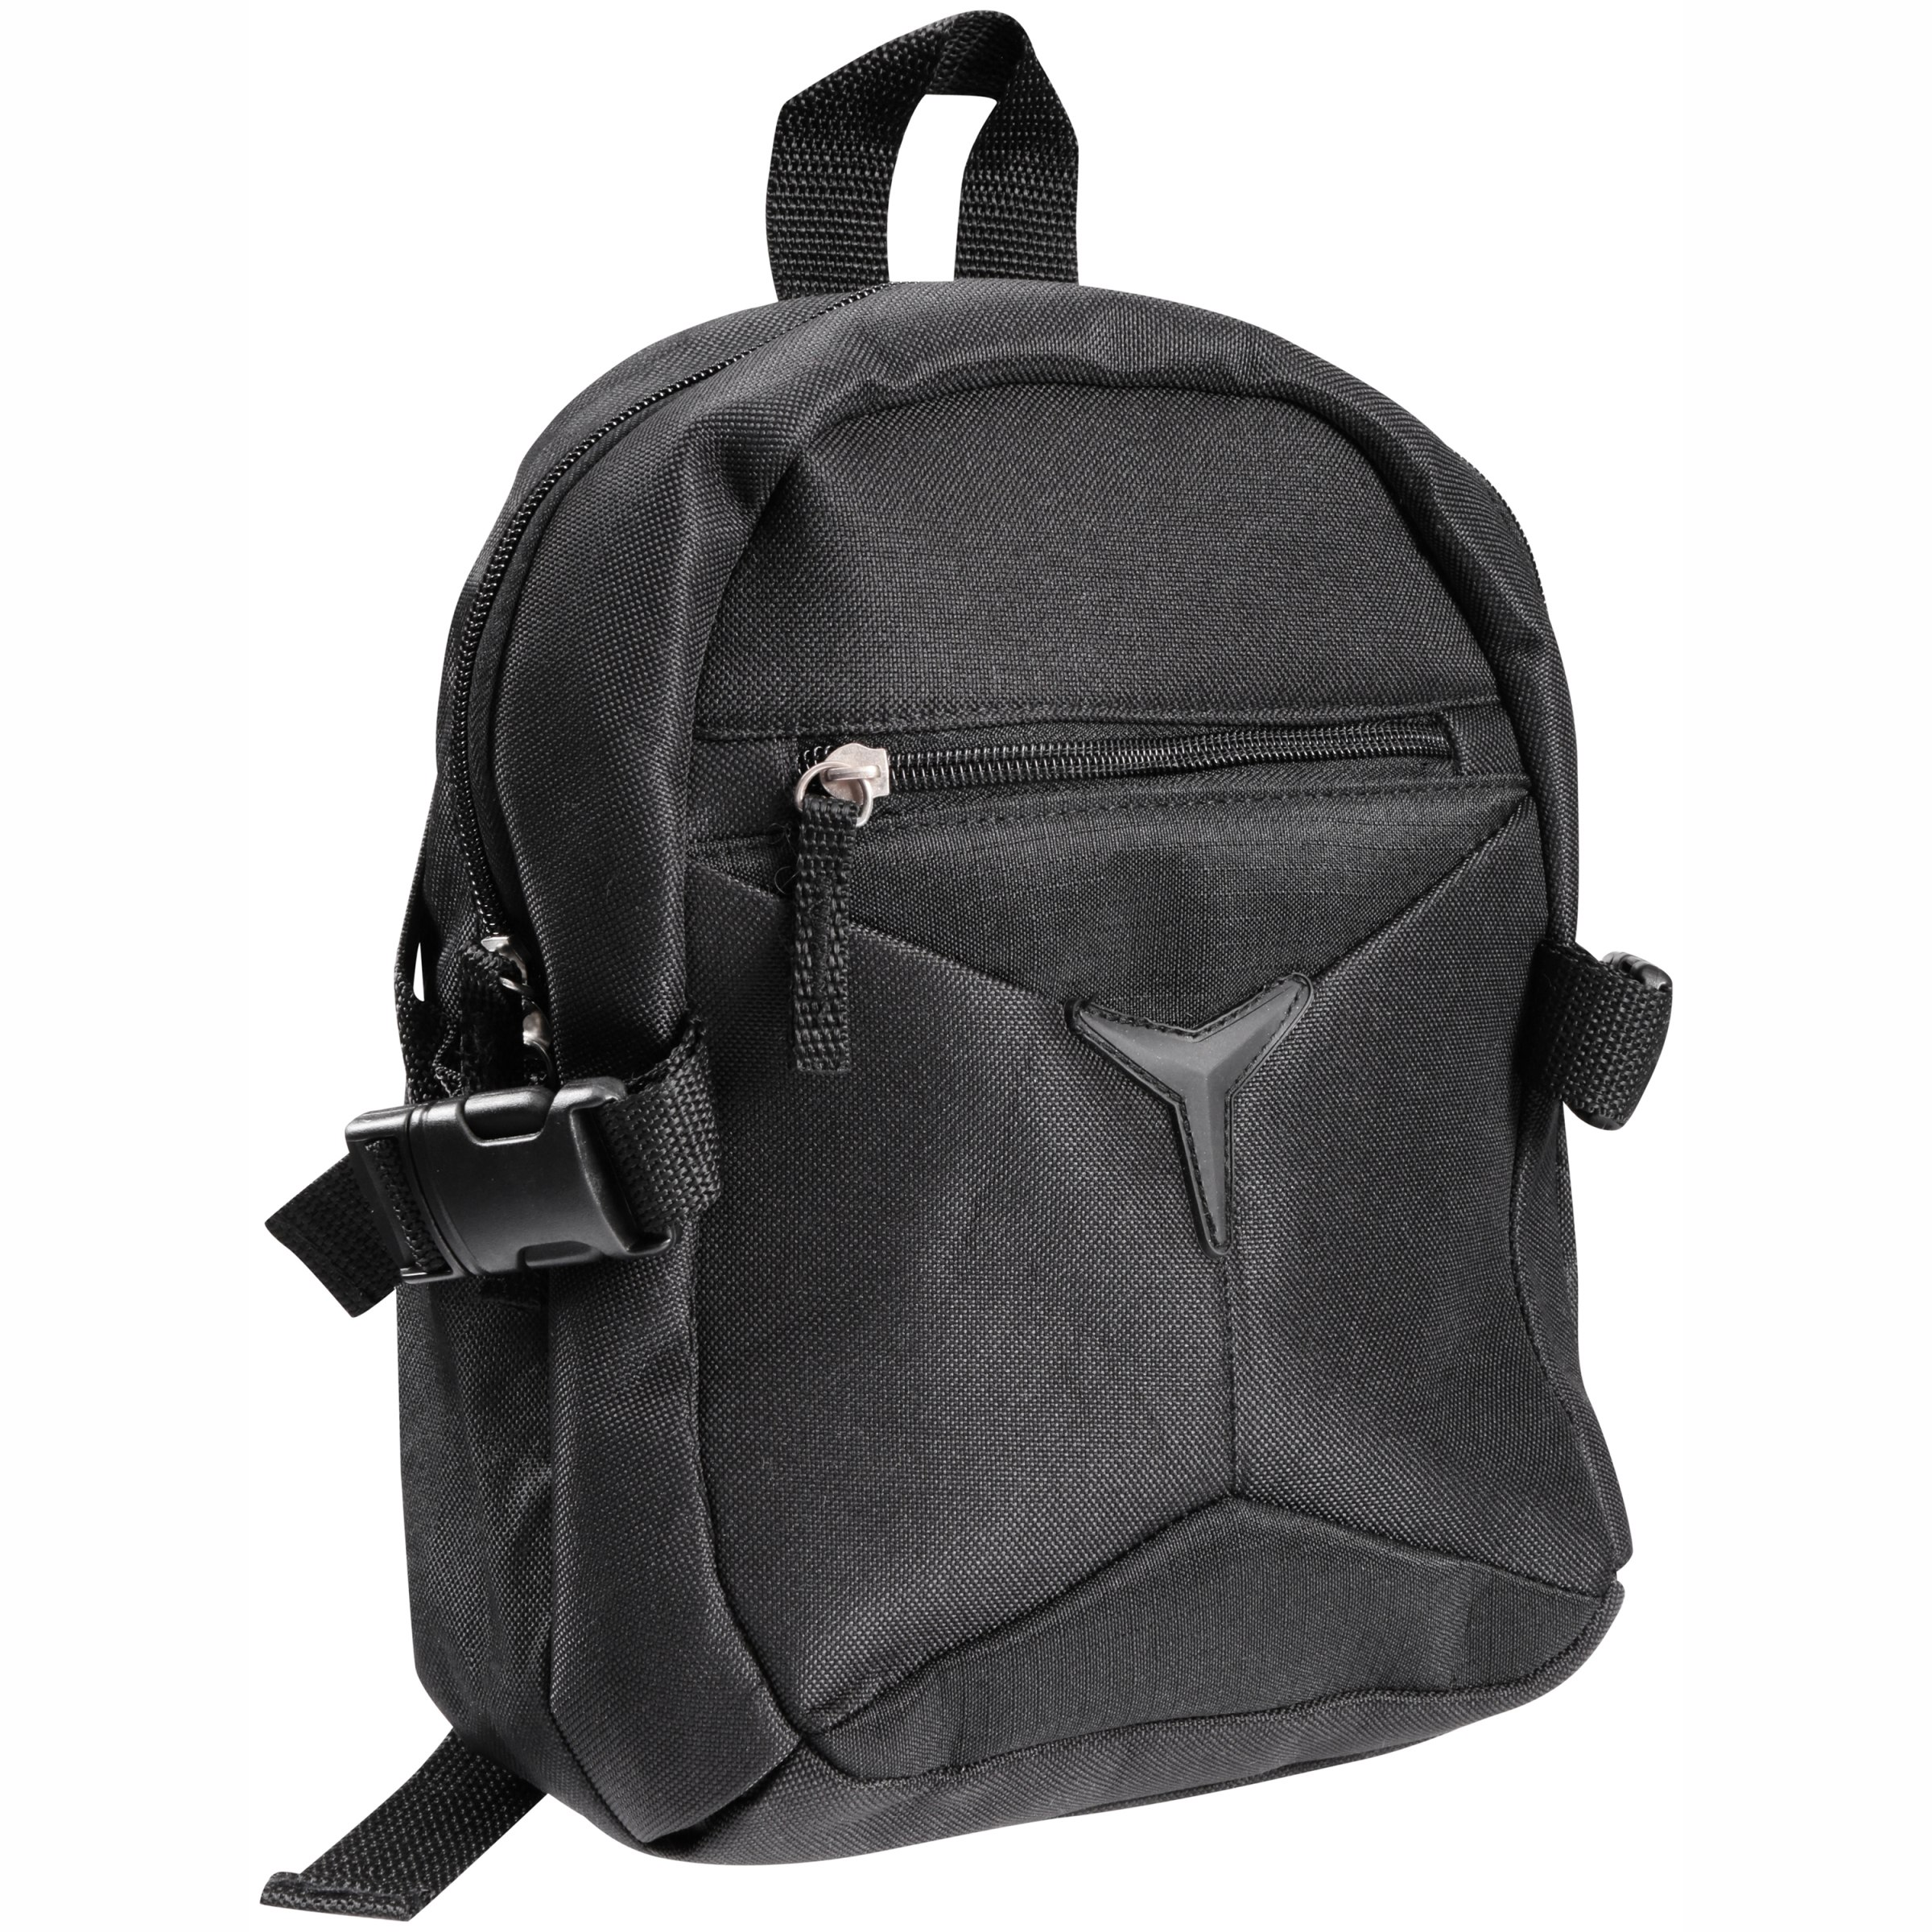 American Tourister® Black Accessory Day Pack